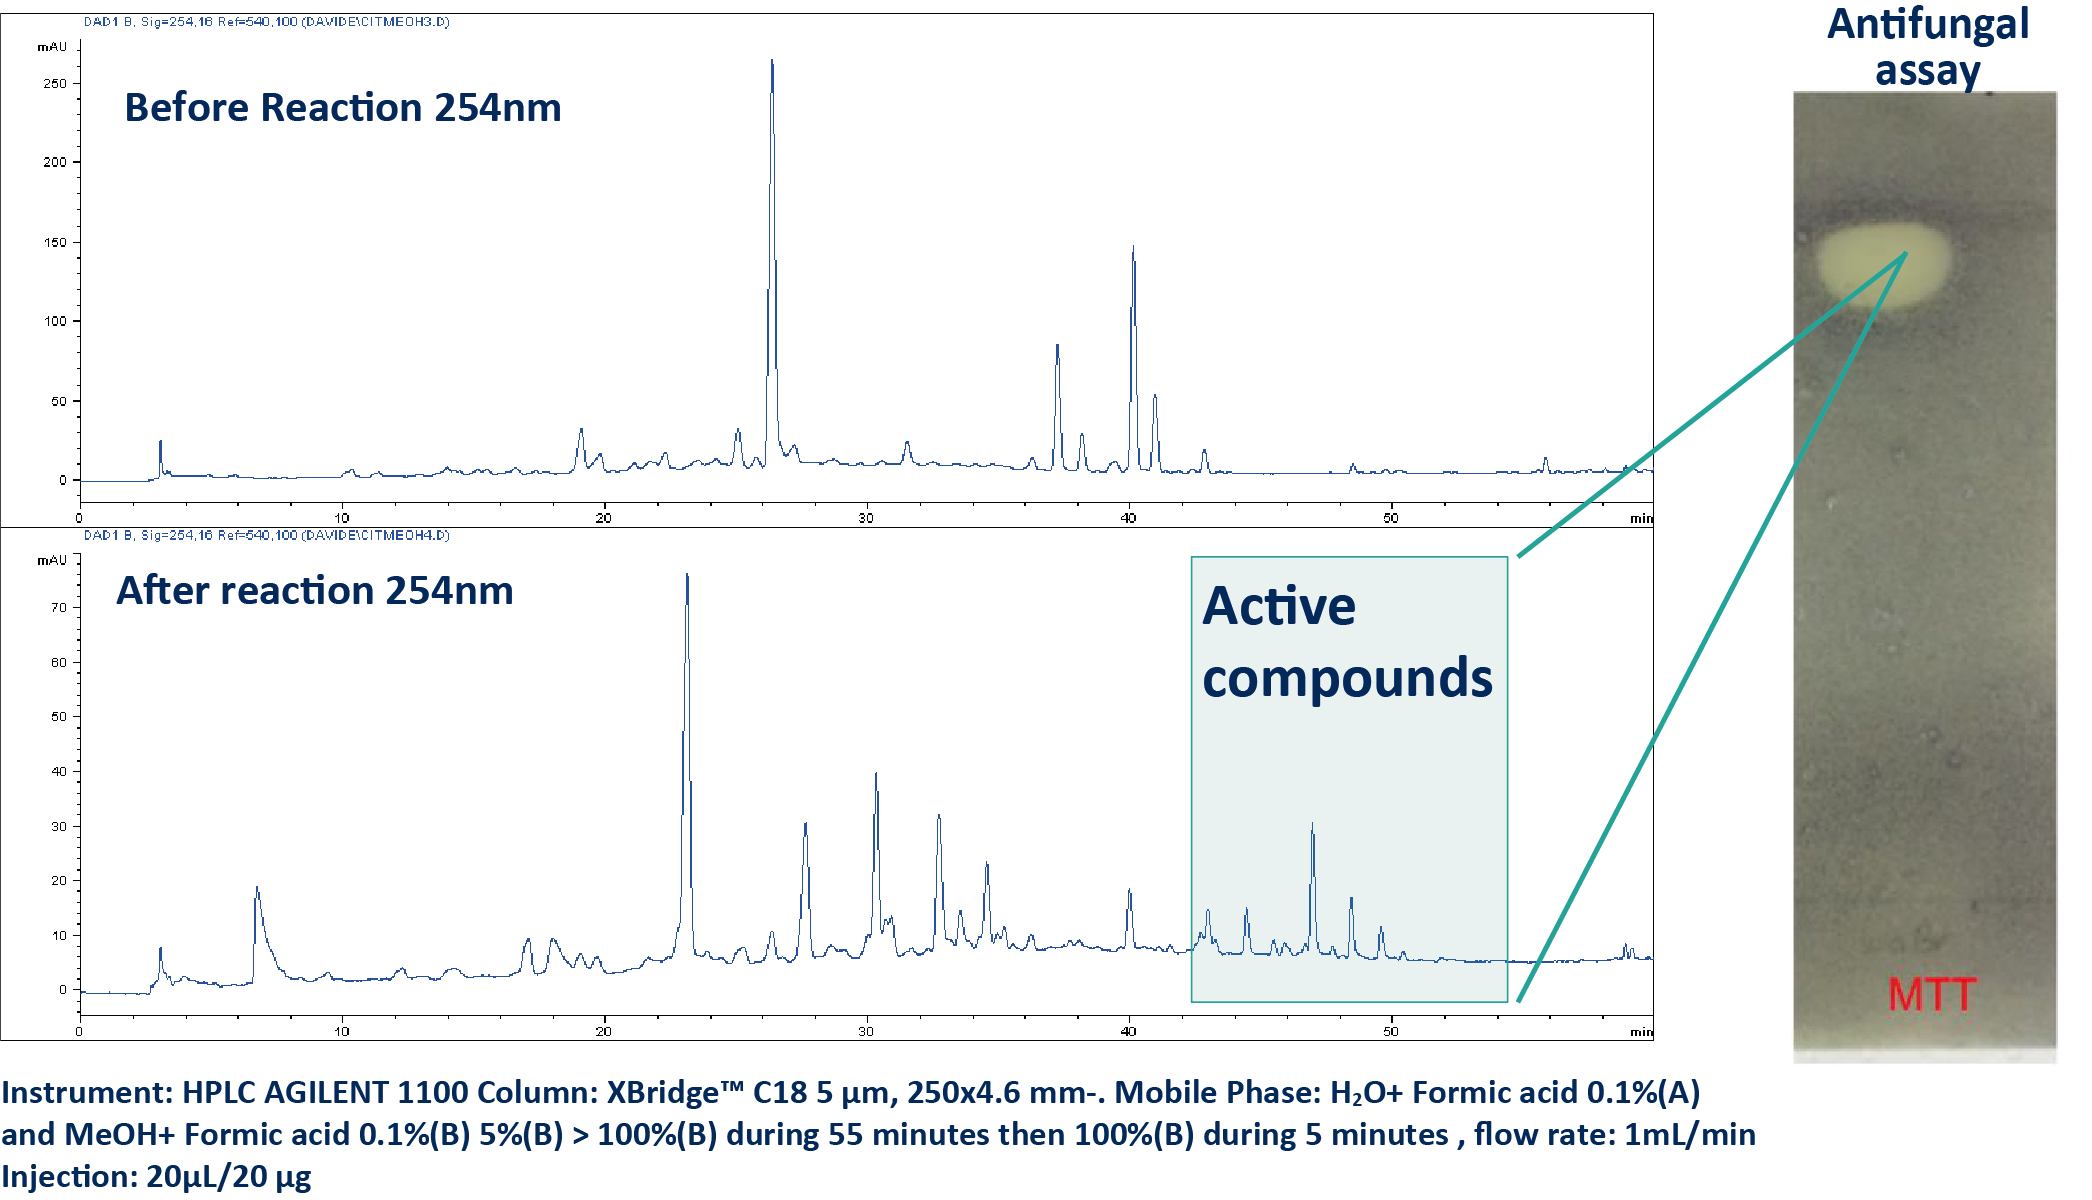 HPLC UV analysis of the crude extract after and before reaction